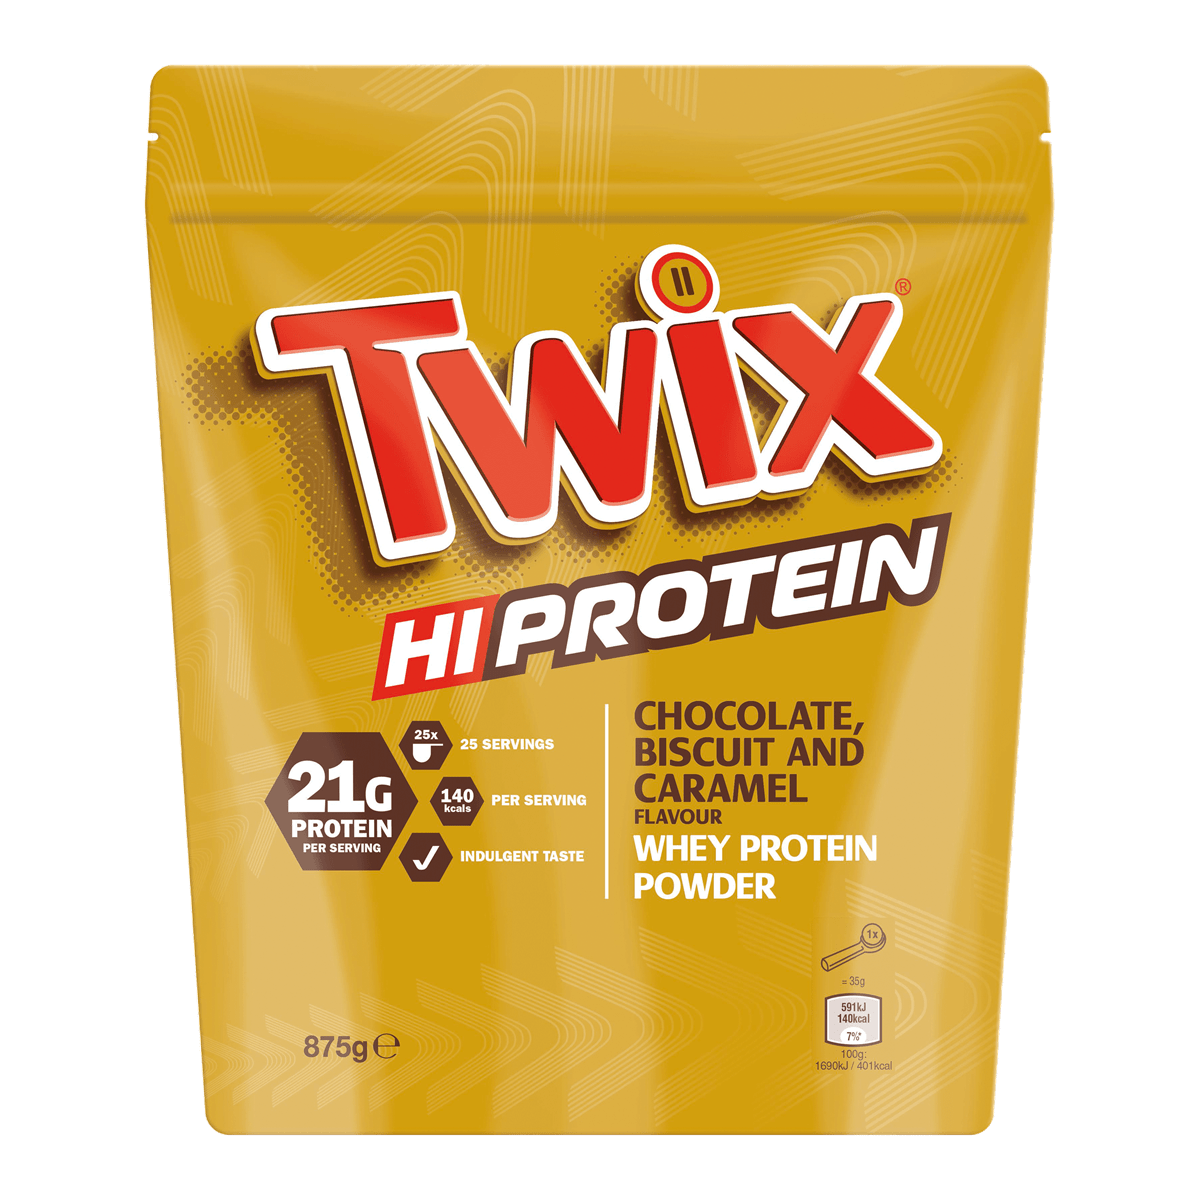 Twix Hi-Protein Whey Powder